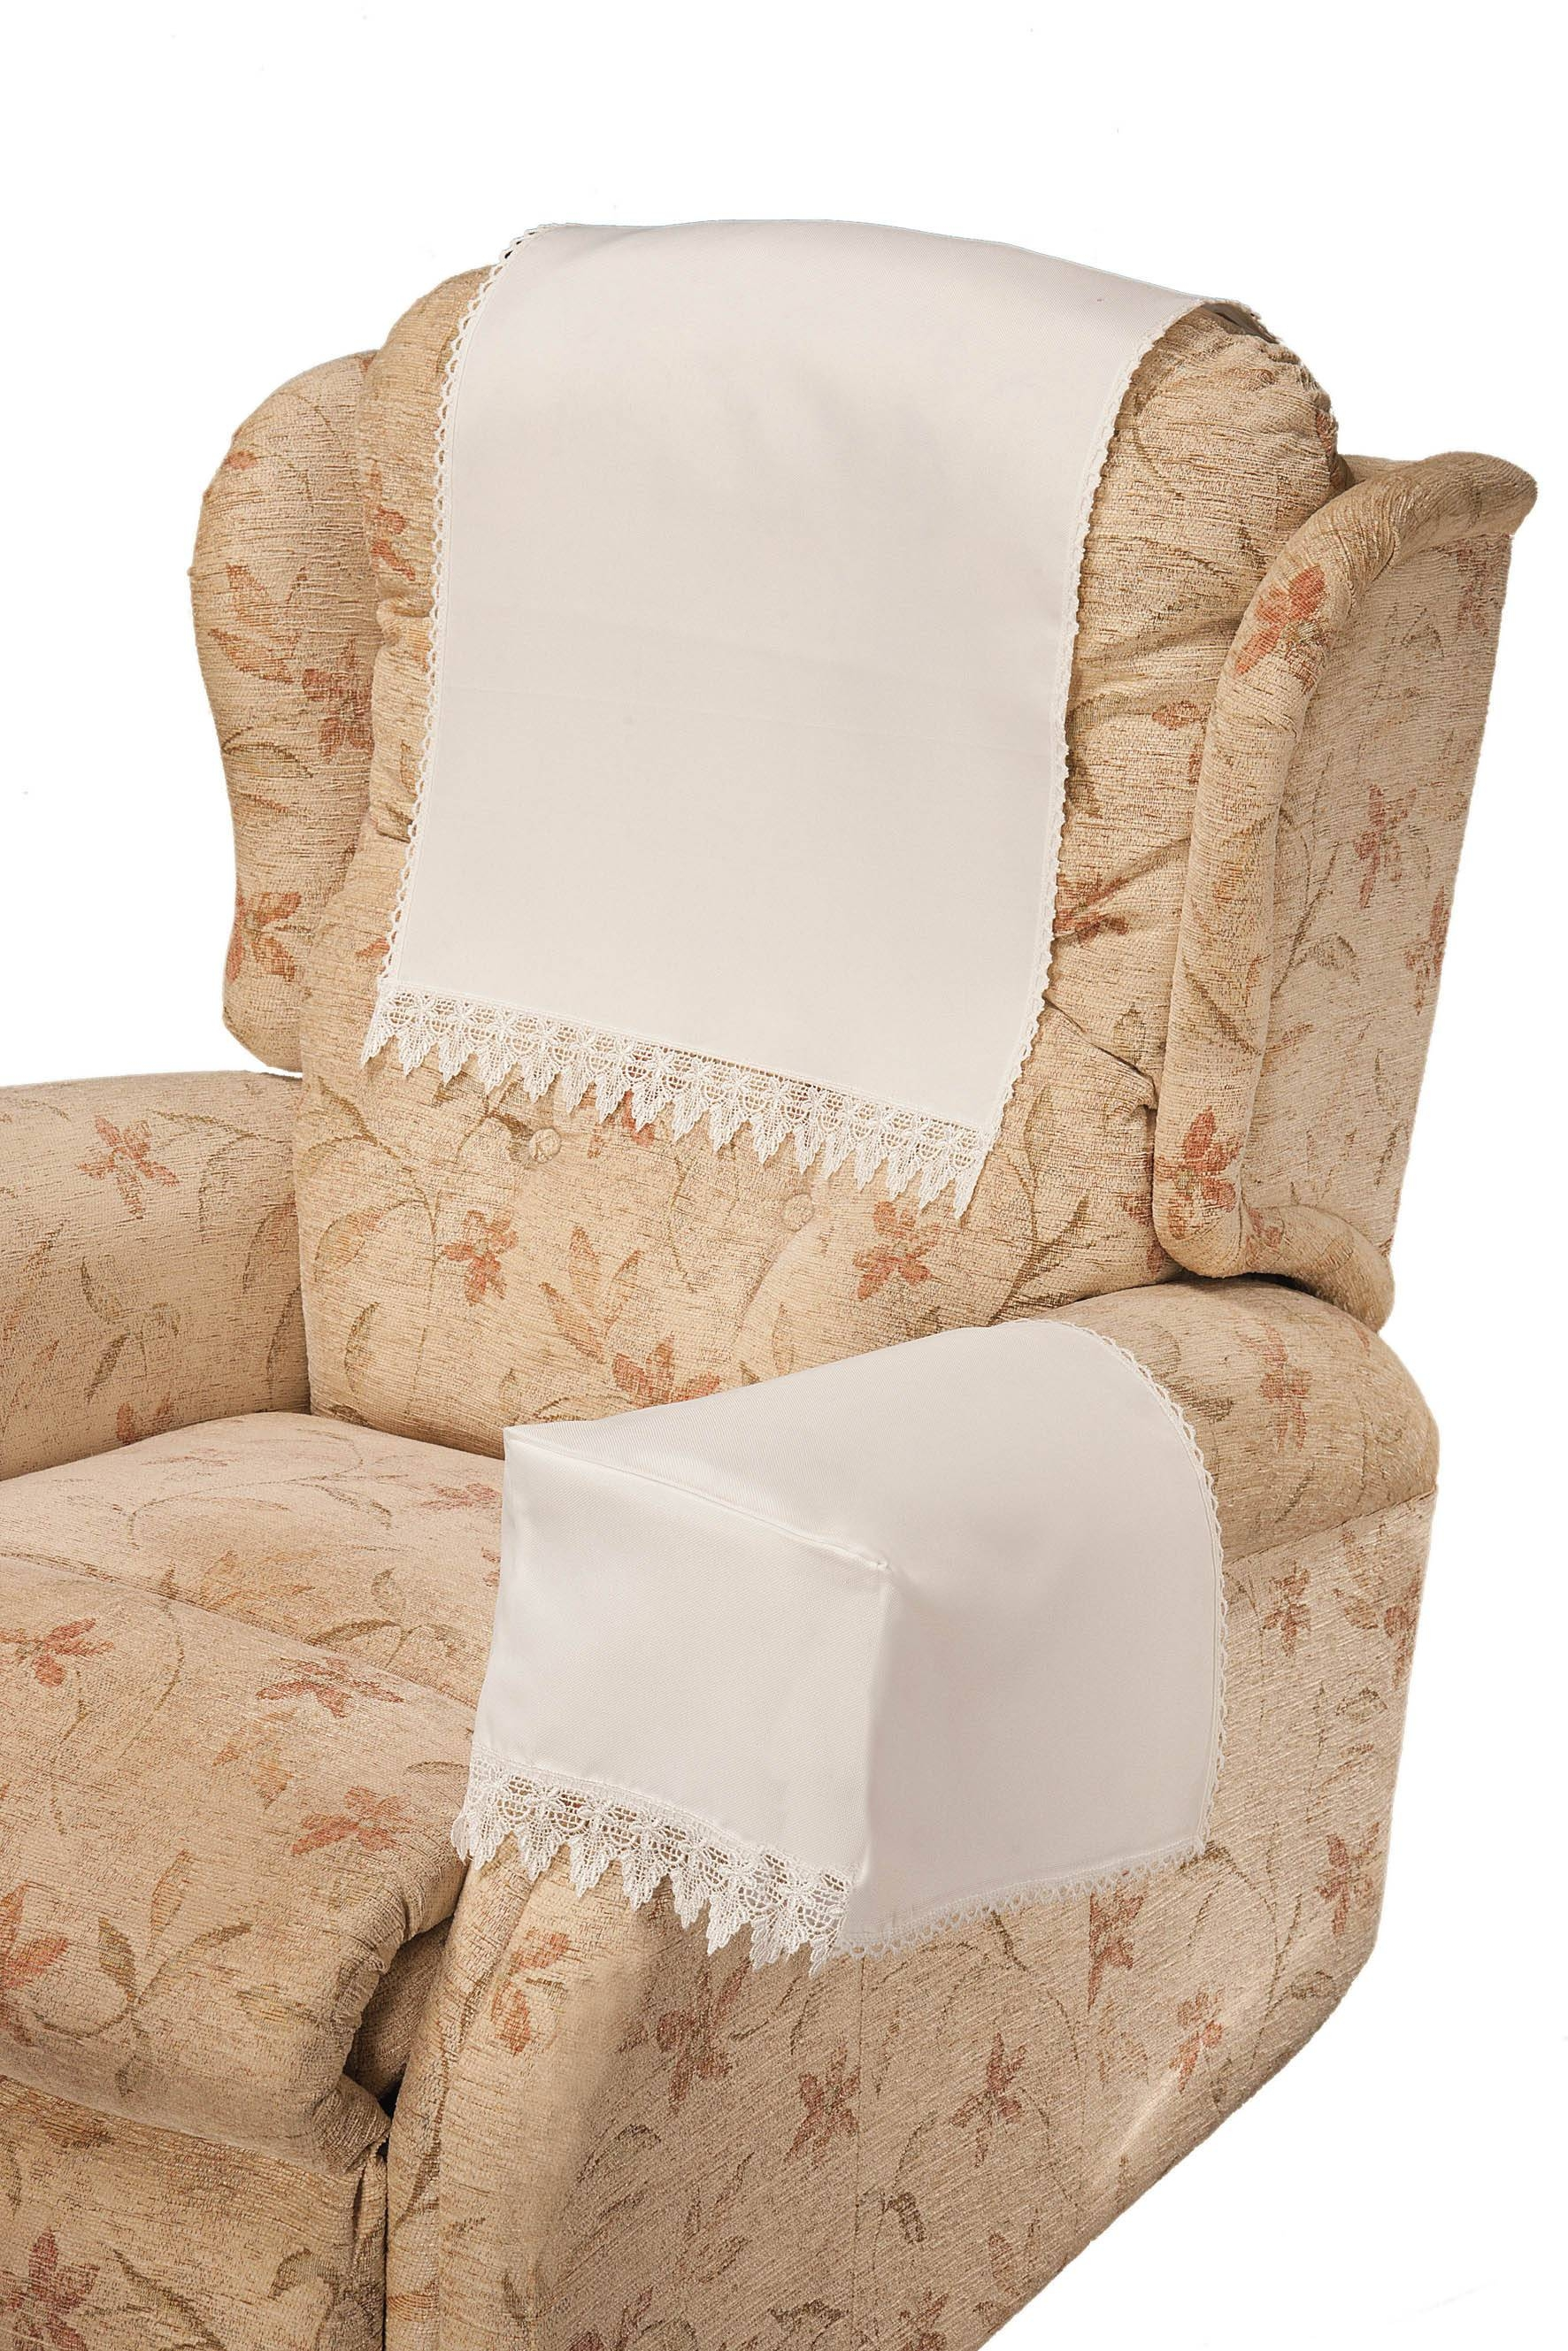 Chair Armrest Covers Images – Home Furniture Ideas within Armchair Armrest Covers (Image 6 of 15)